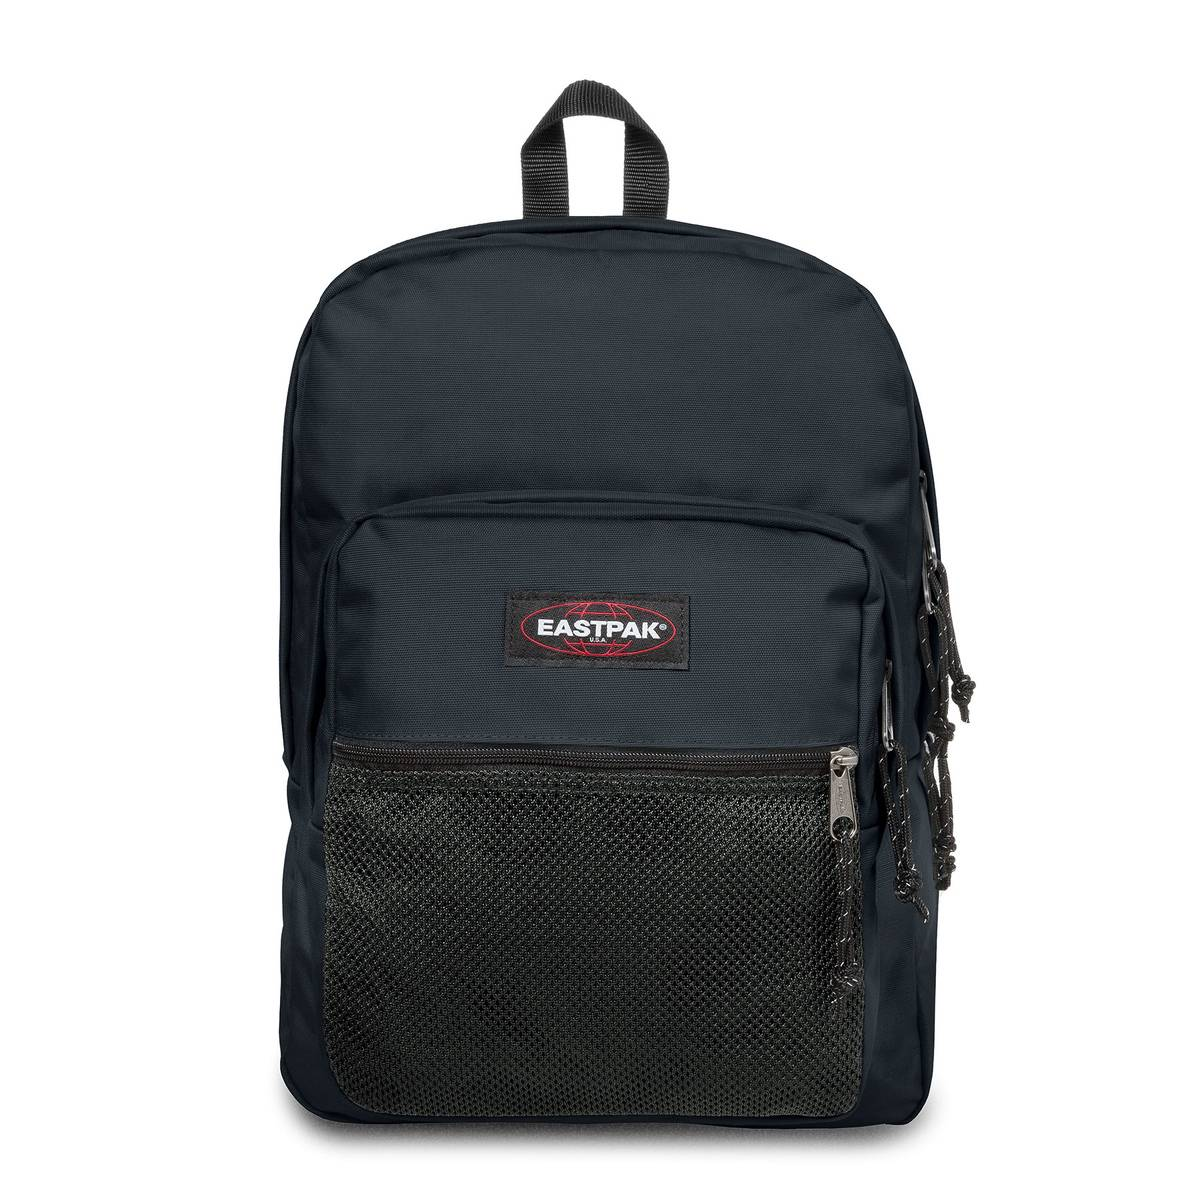 Eastpak Zaino Pinnacle blu Cloud Navy